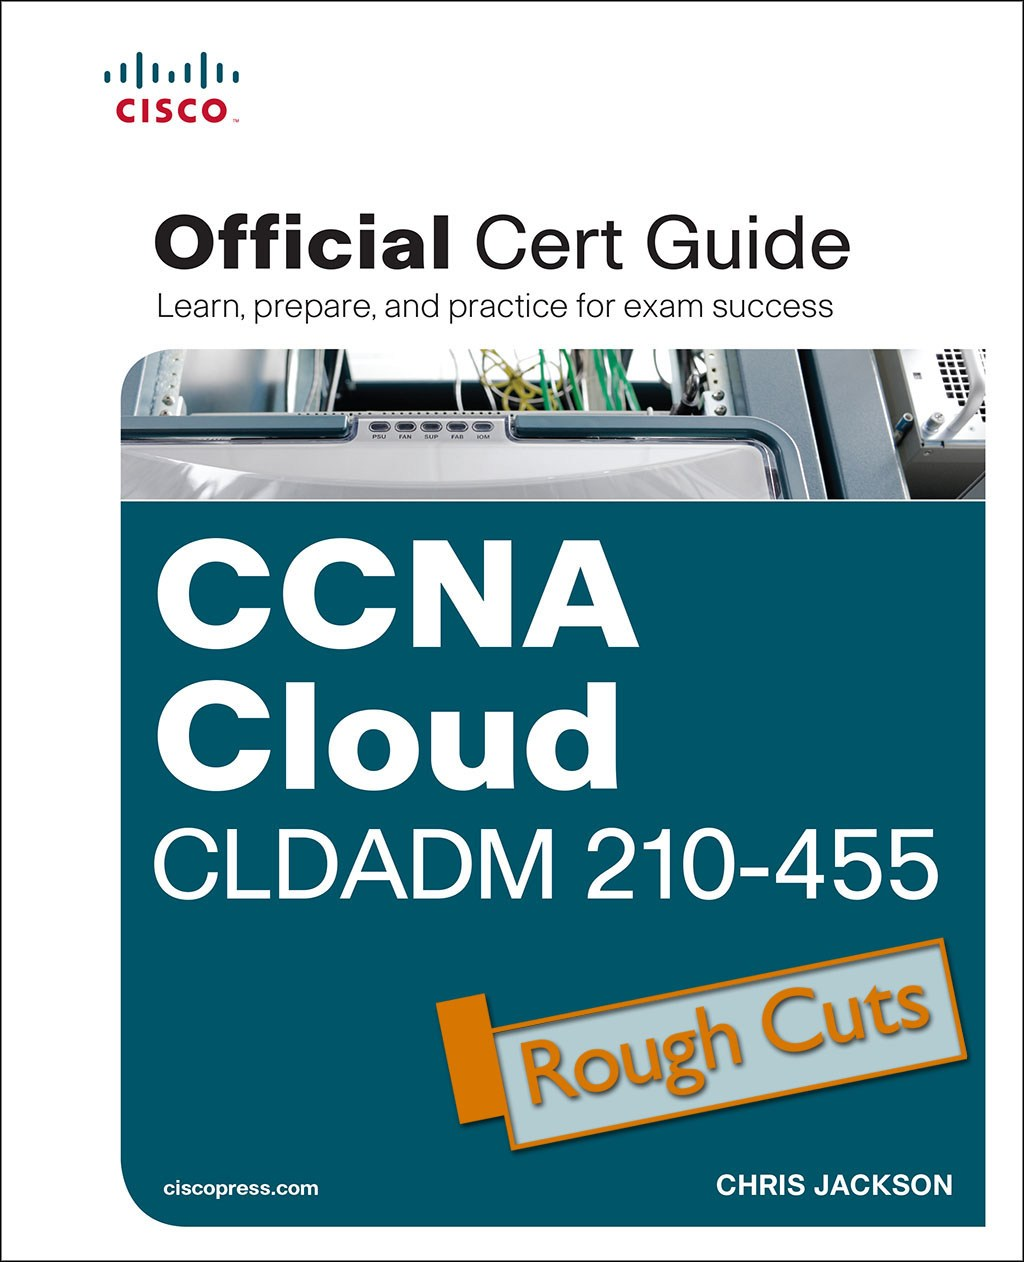 CCNA Cloud CLDADM 210-455 Official Cert Guide, Rough Cuts